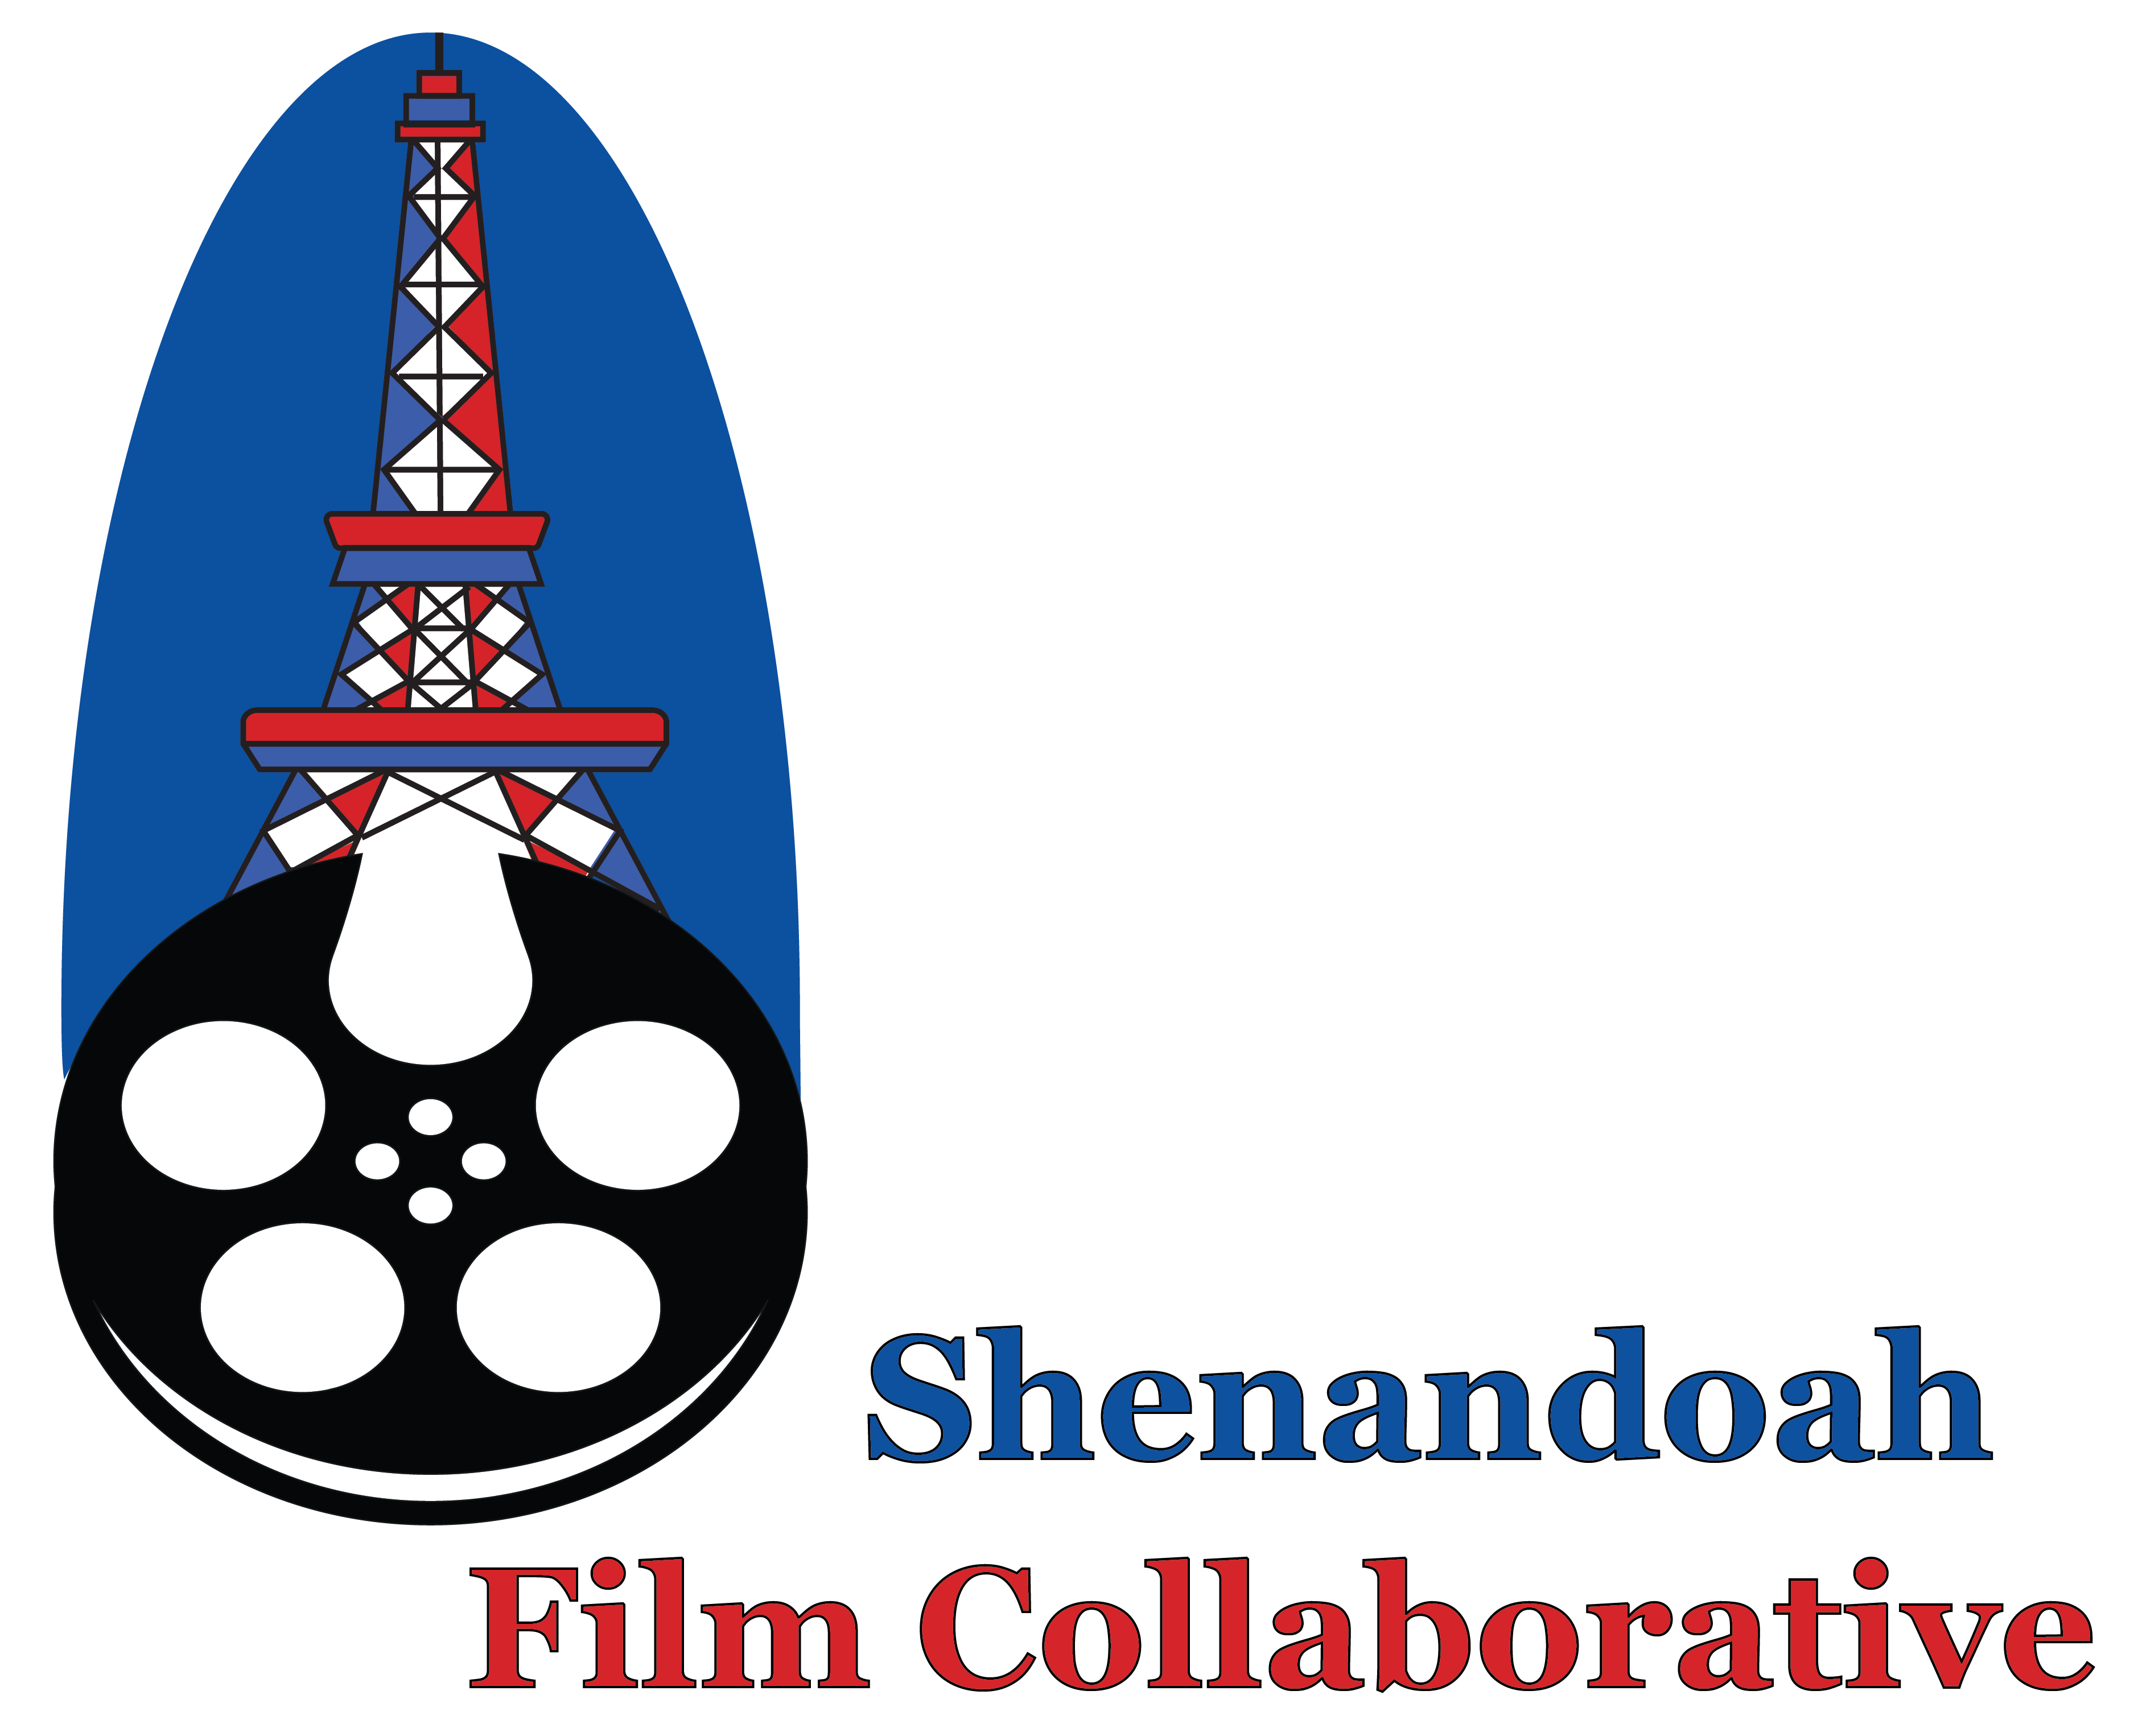 Shenandoah Film Collaborative Logo